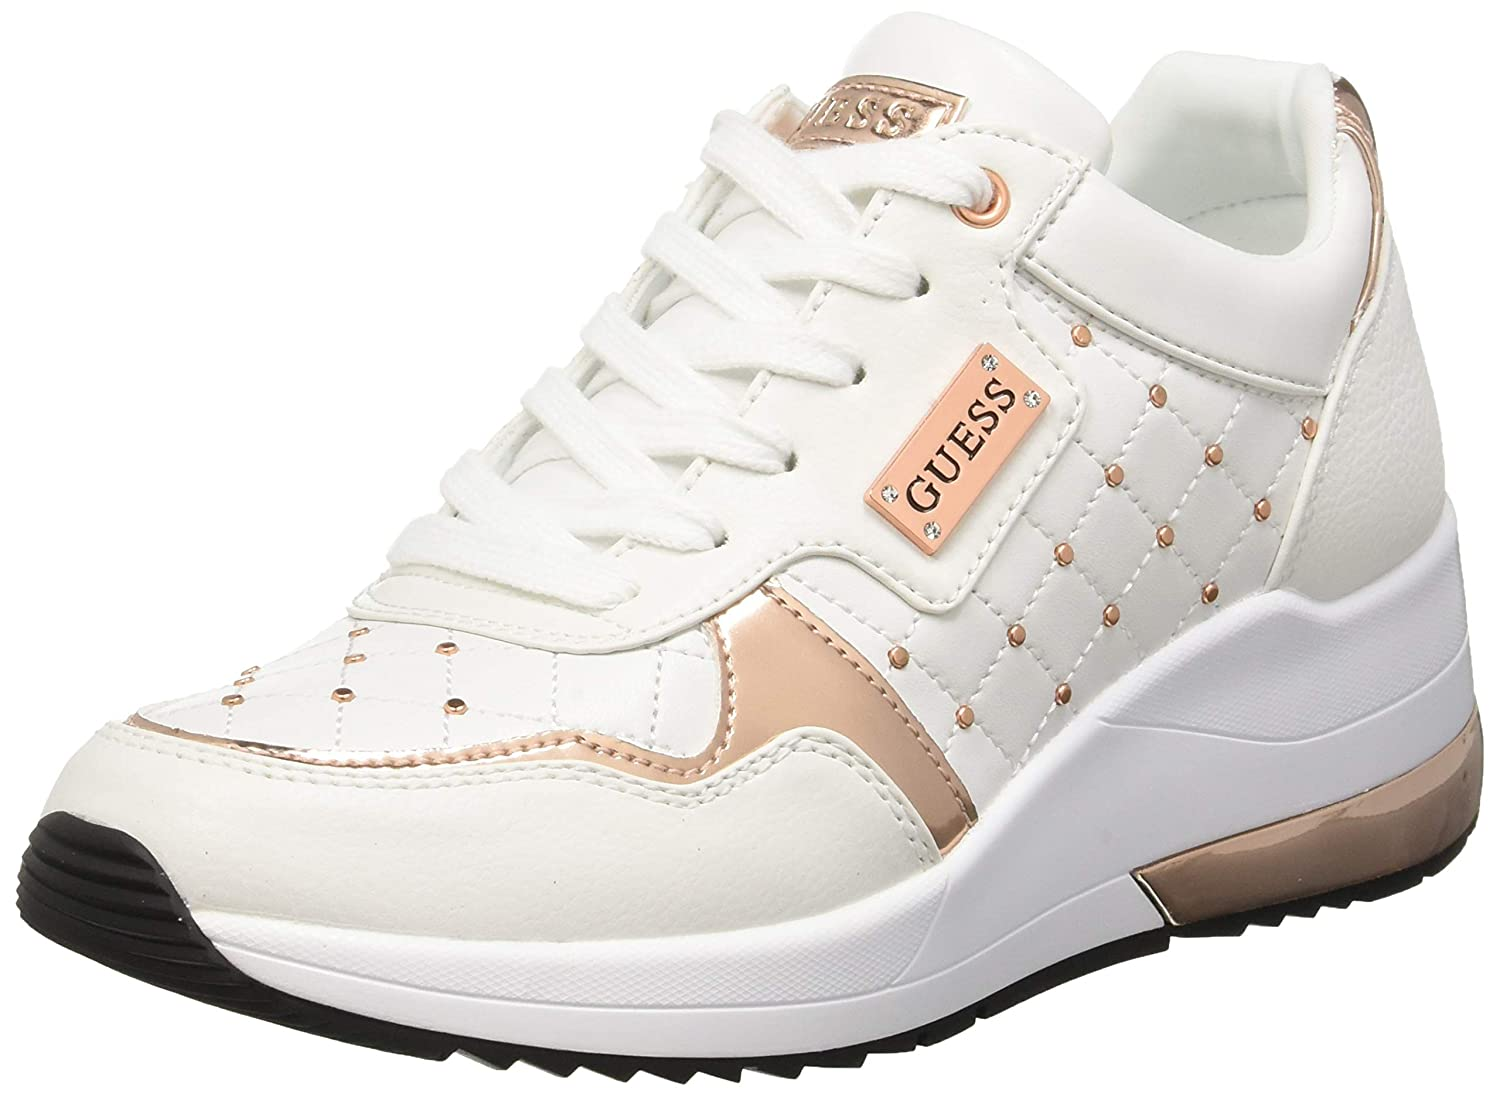 Guess Lady leather active Janetta LiBa trsQhd